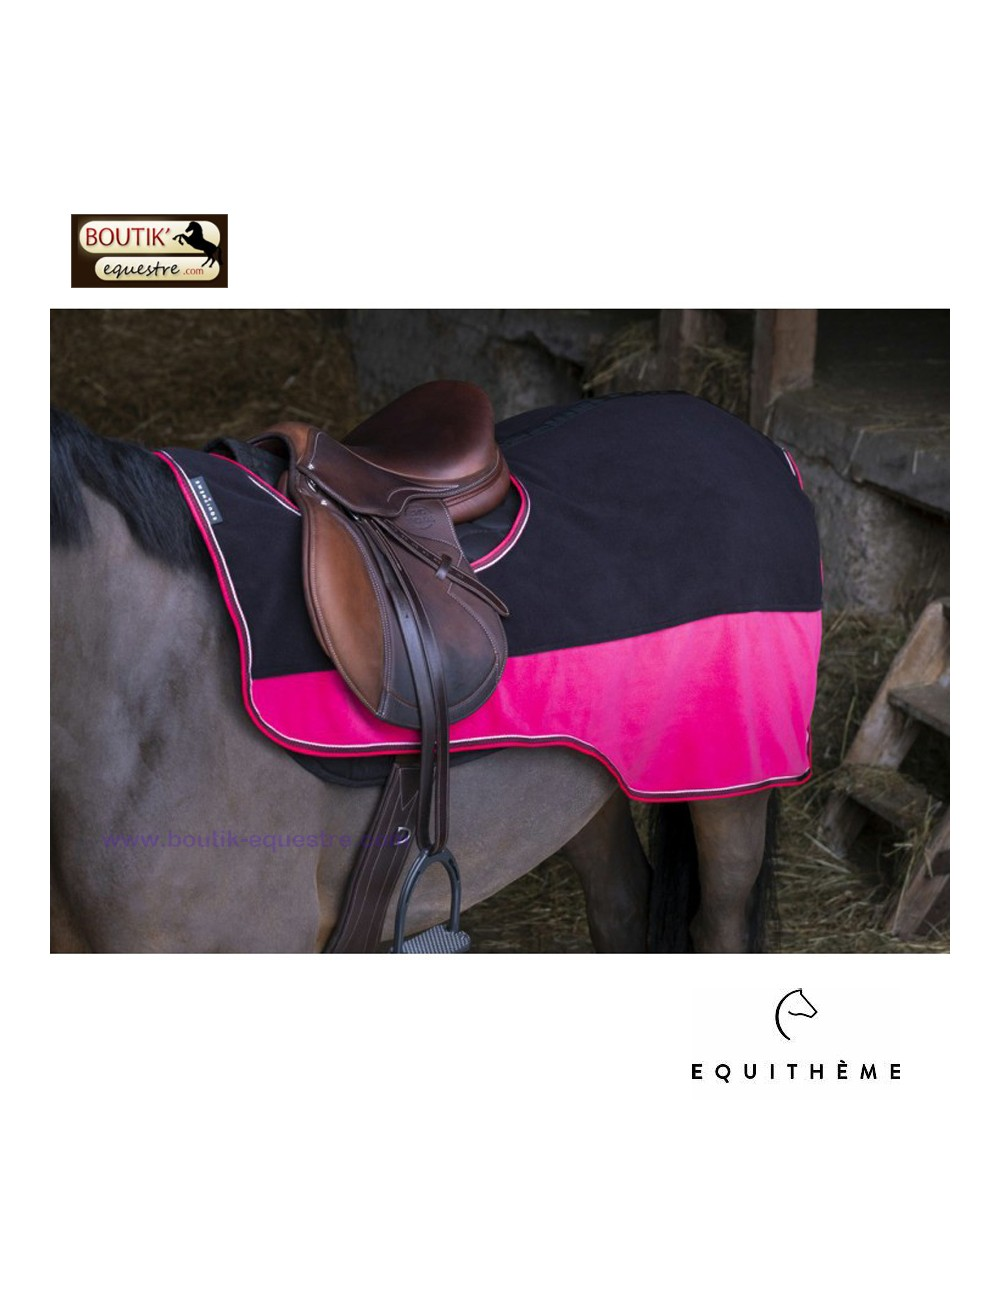 Couvre reins EQUITHEME polaire